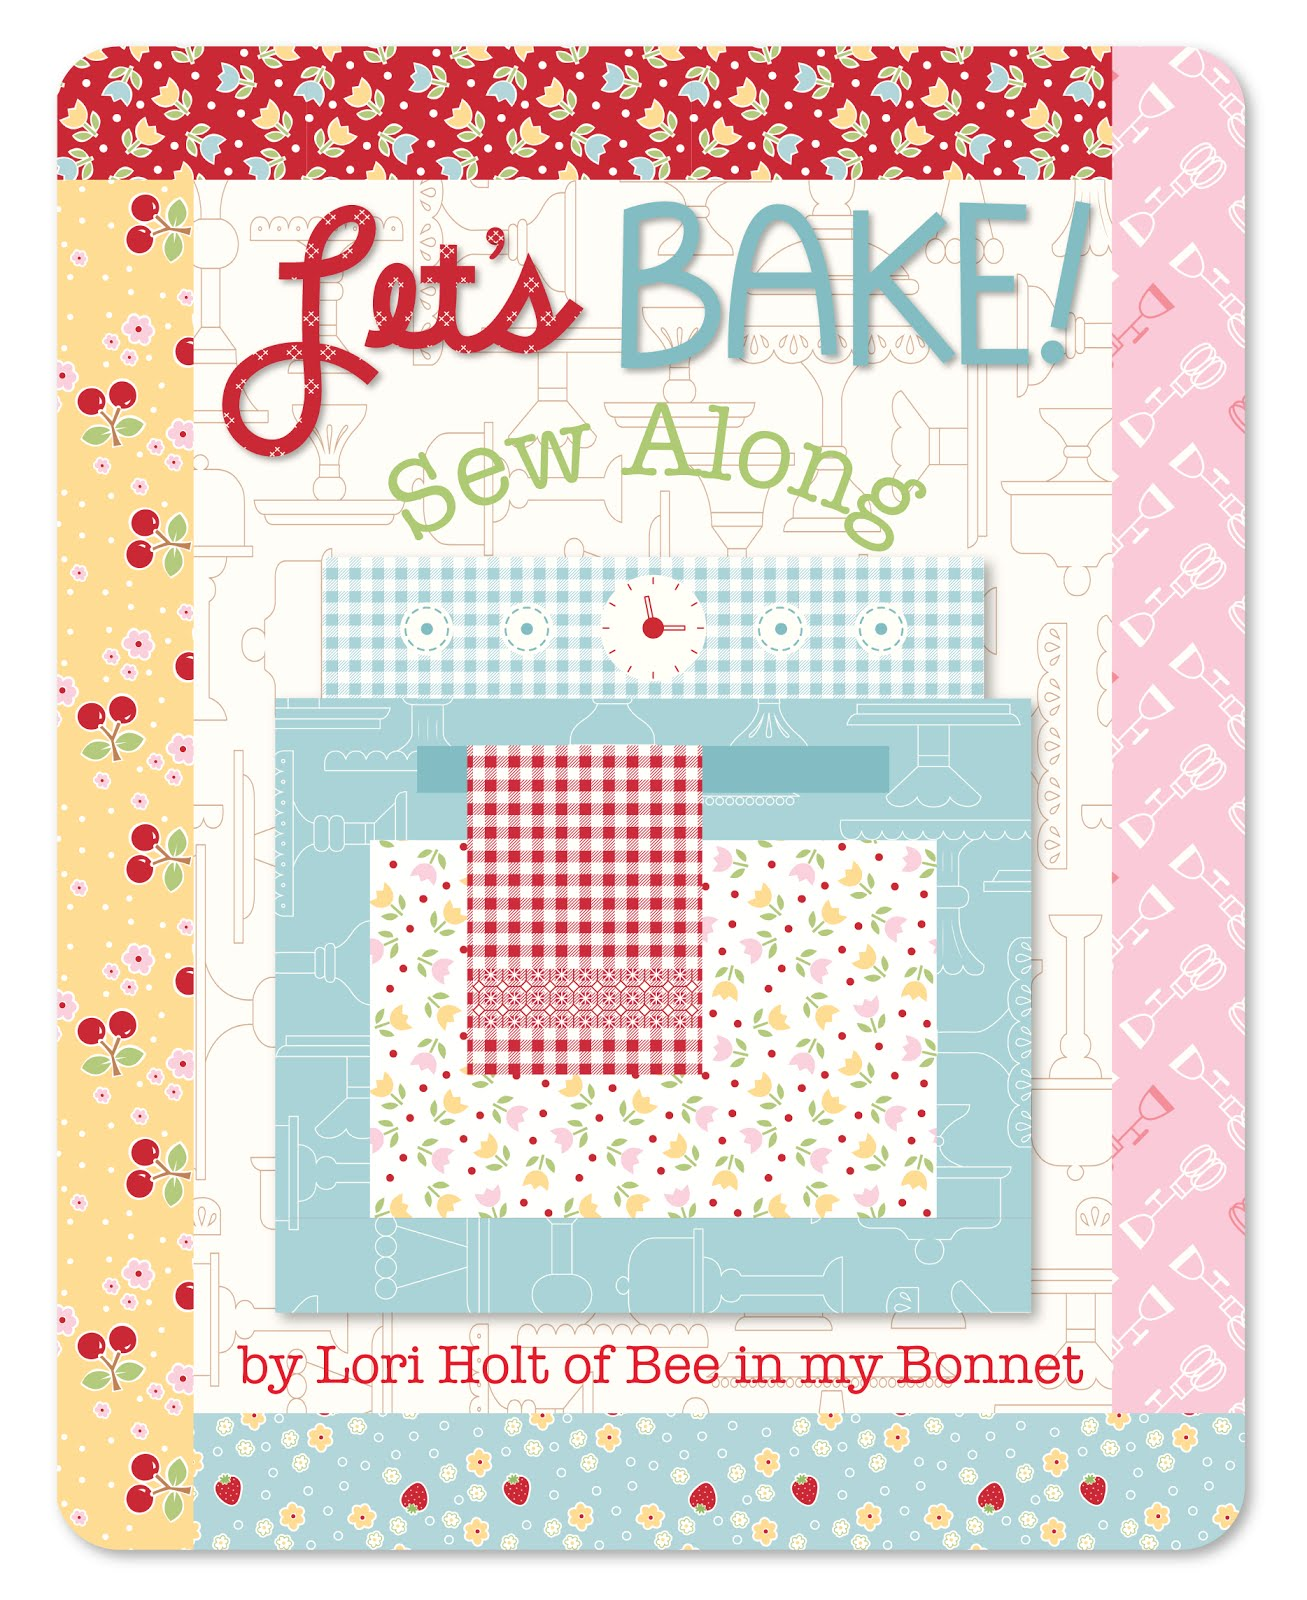 Let's Bake Sew Along!